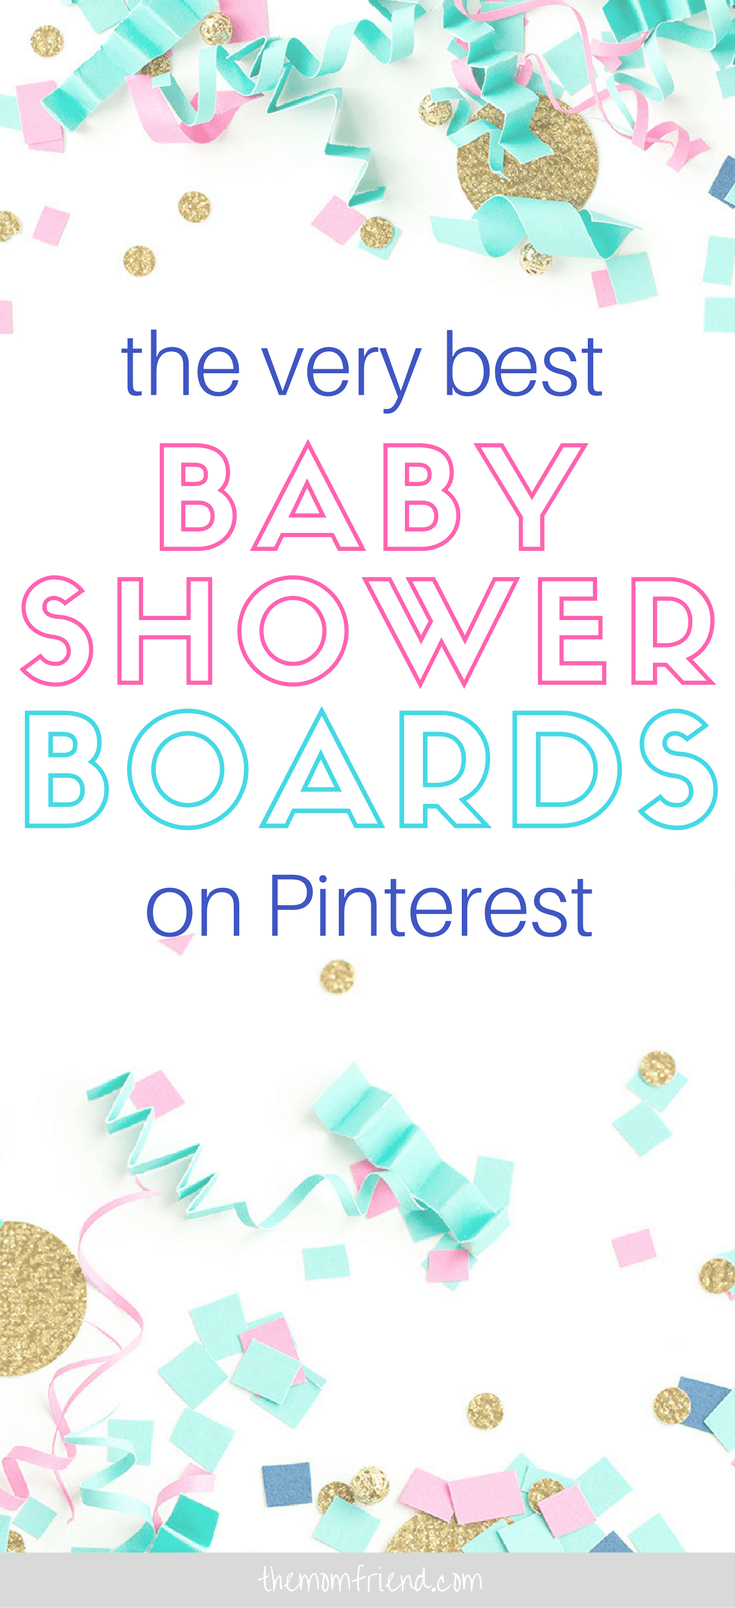 Pinnable image of Best Baby Shower Ideas.